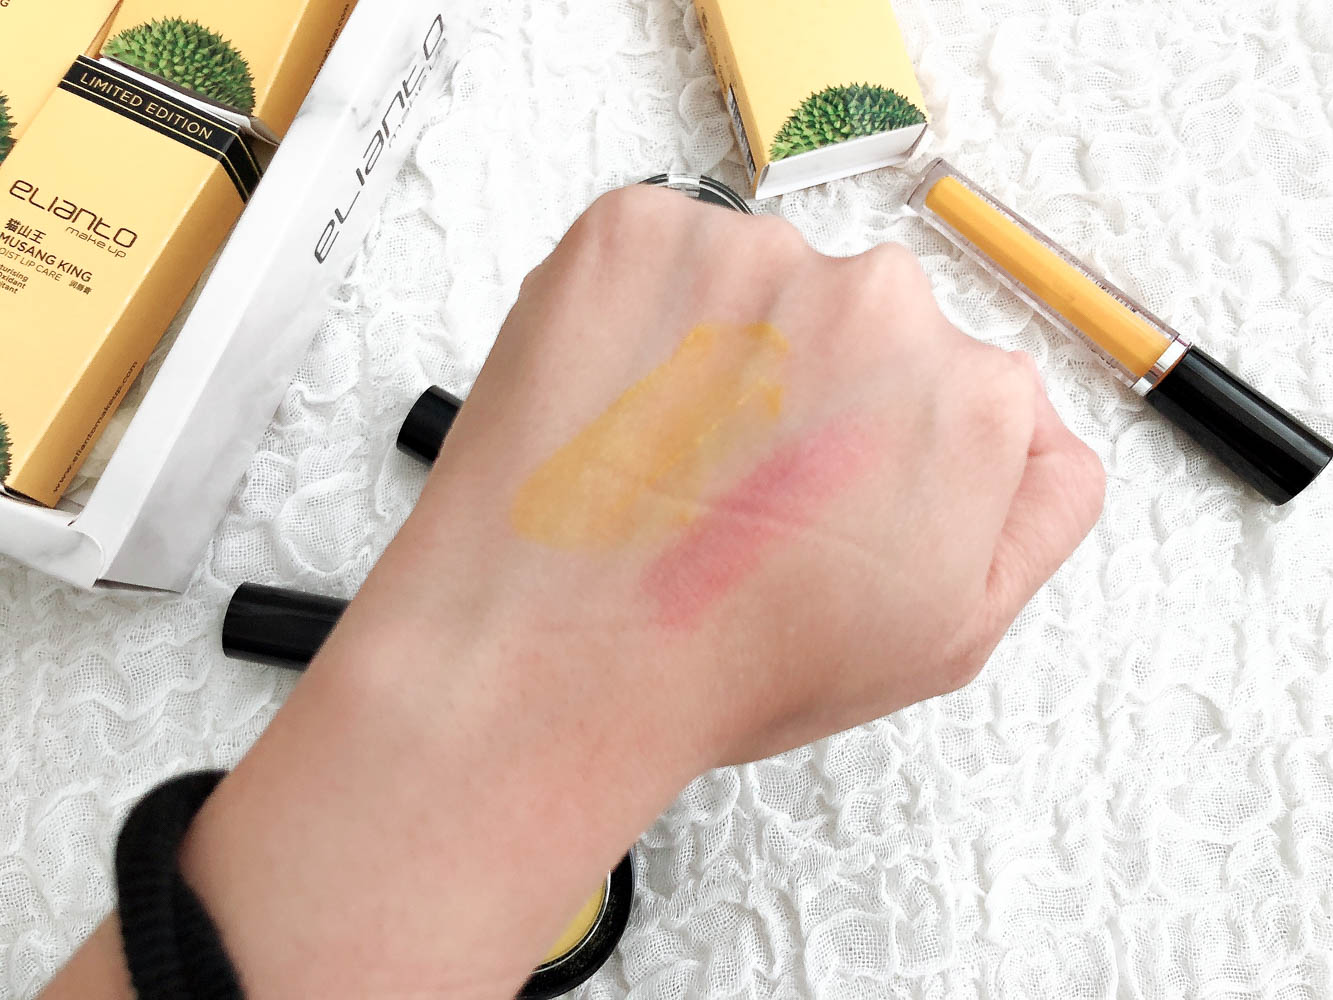 Elianto Musang King lip swatches